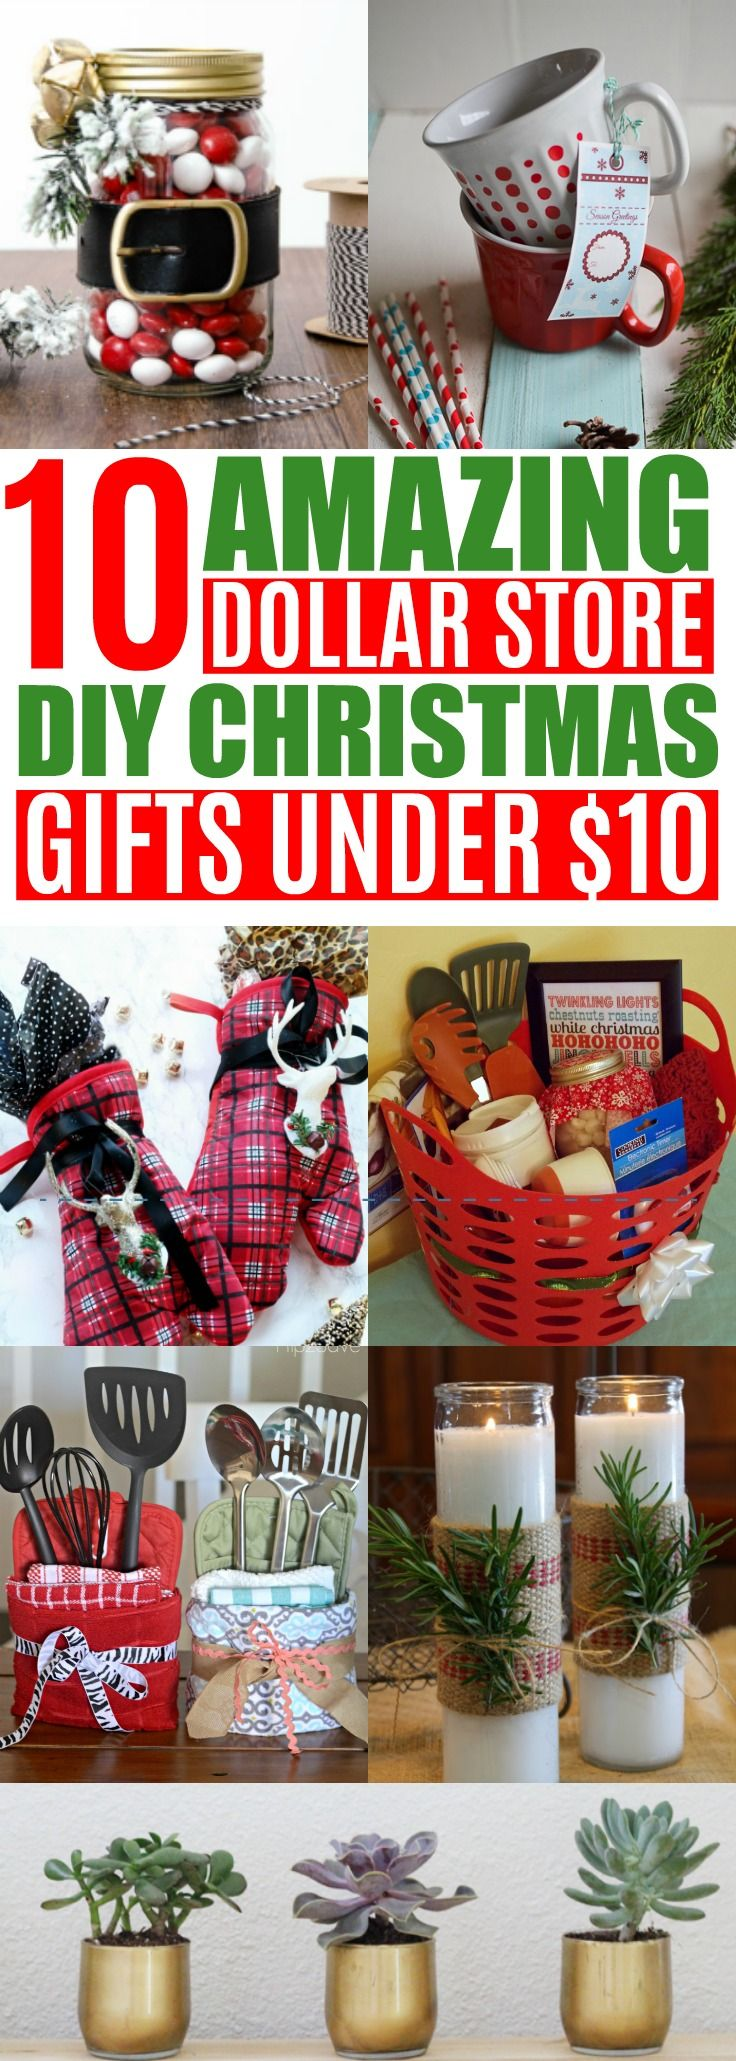 10 diy cheap christmas gift ideas from the dollar store under 10 diy and crafts pinterest dollar stores friends family and christmas gifts - Cheap Christmas Gifts For Family